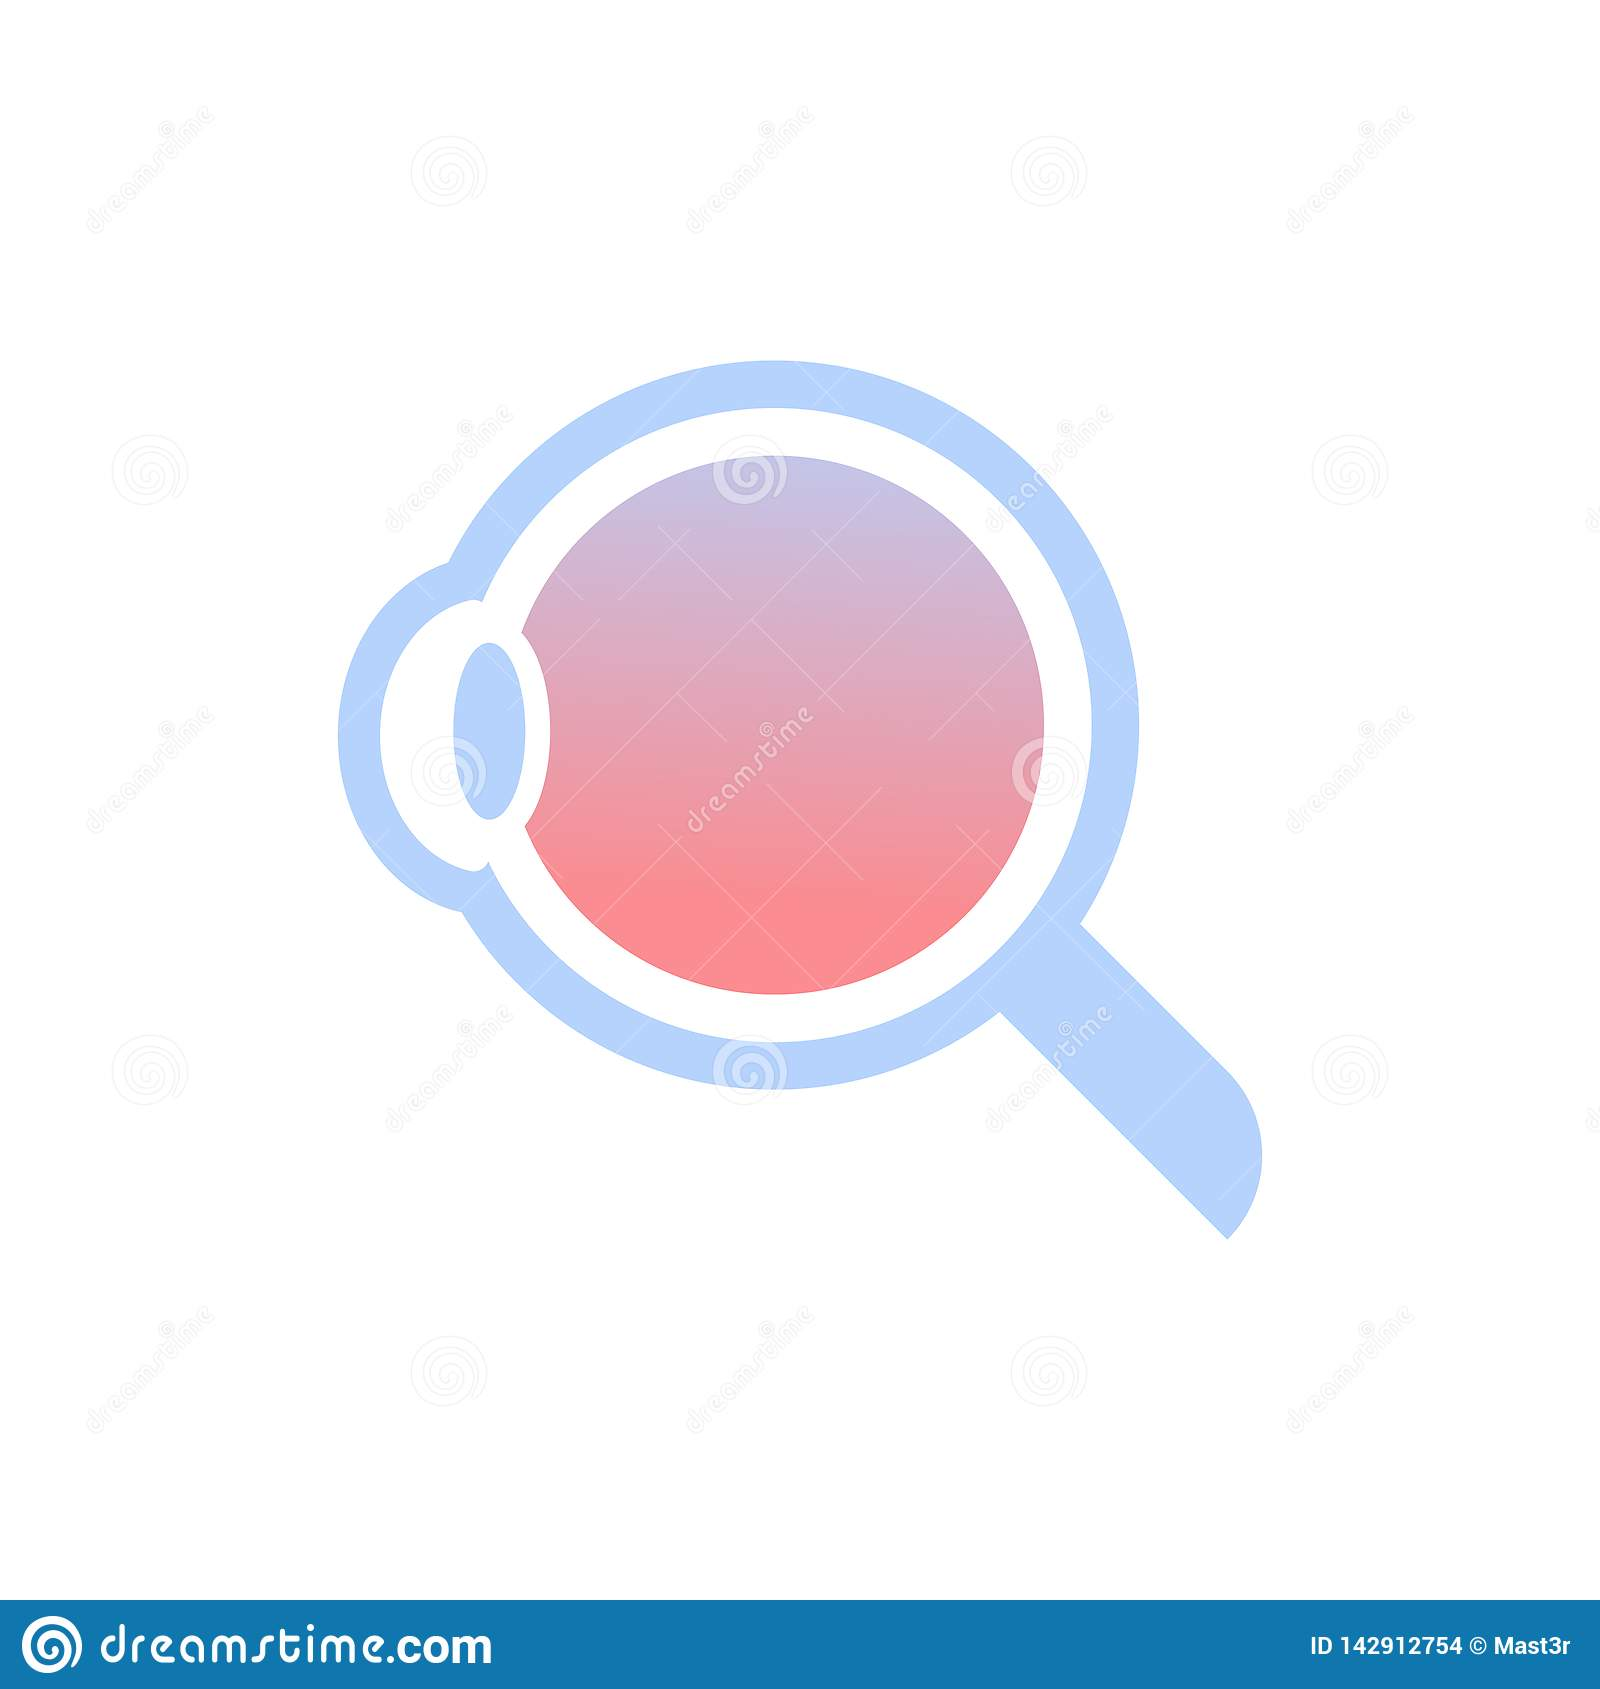 Internal structure human eye anatomy detailed eyeball icon medical healthcare concept flat white background